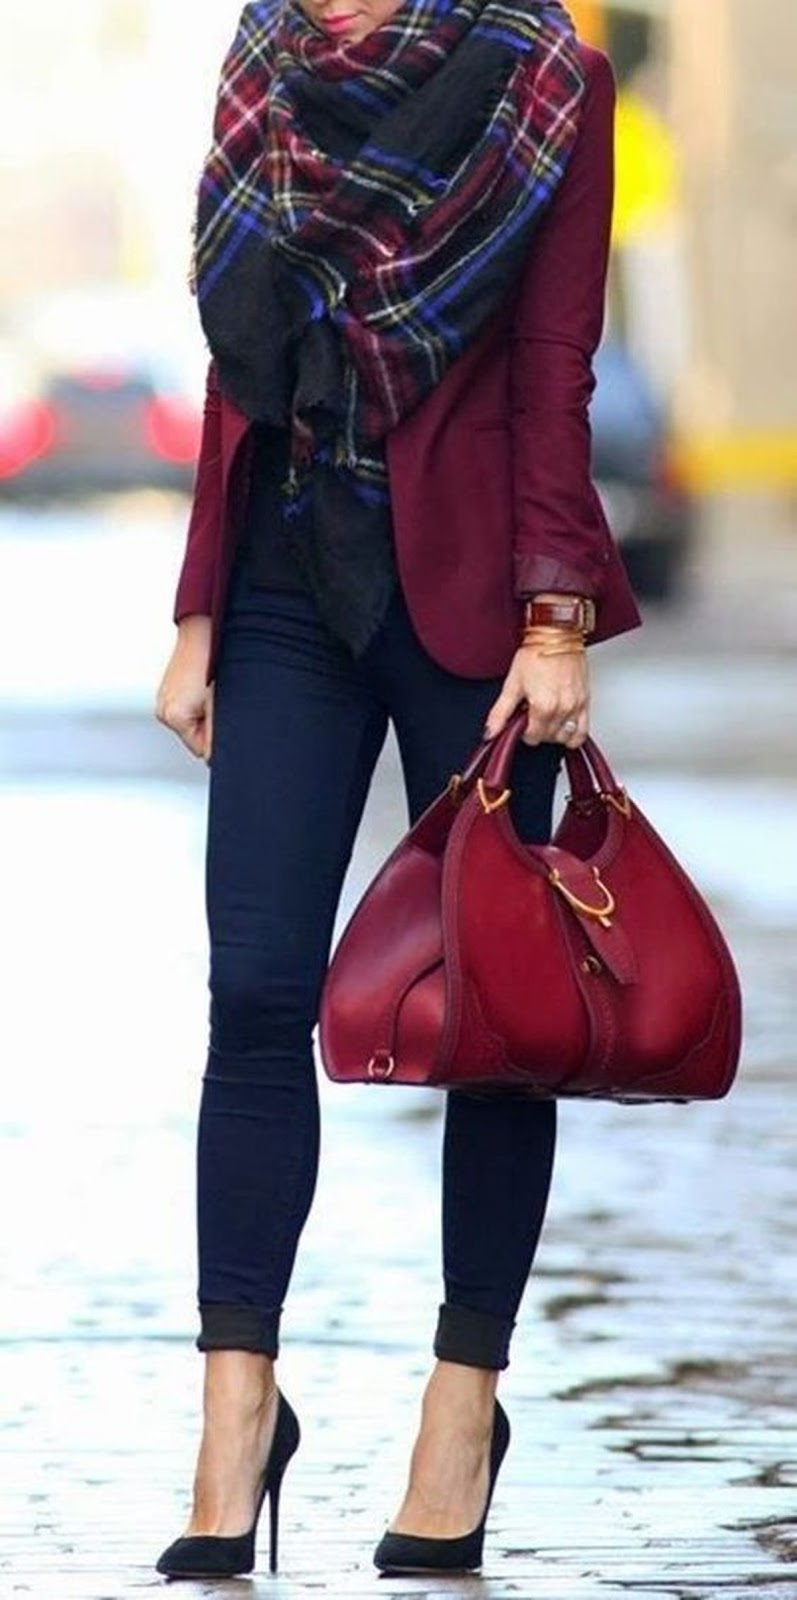 business outfit idea : plaid scarf + maroon blazer + bag + top + black pants + heels